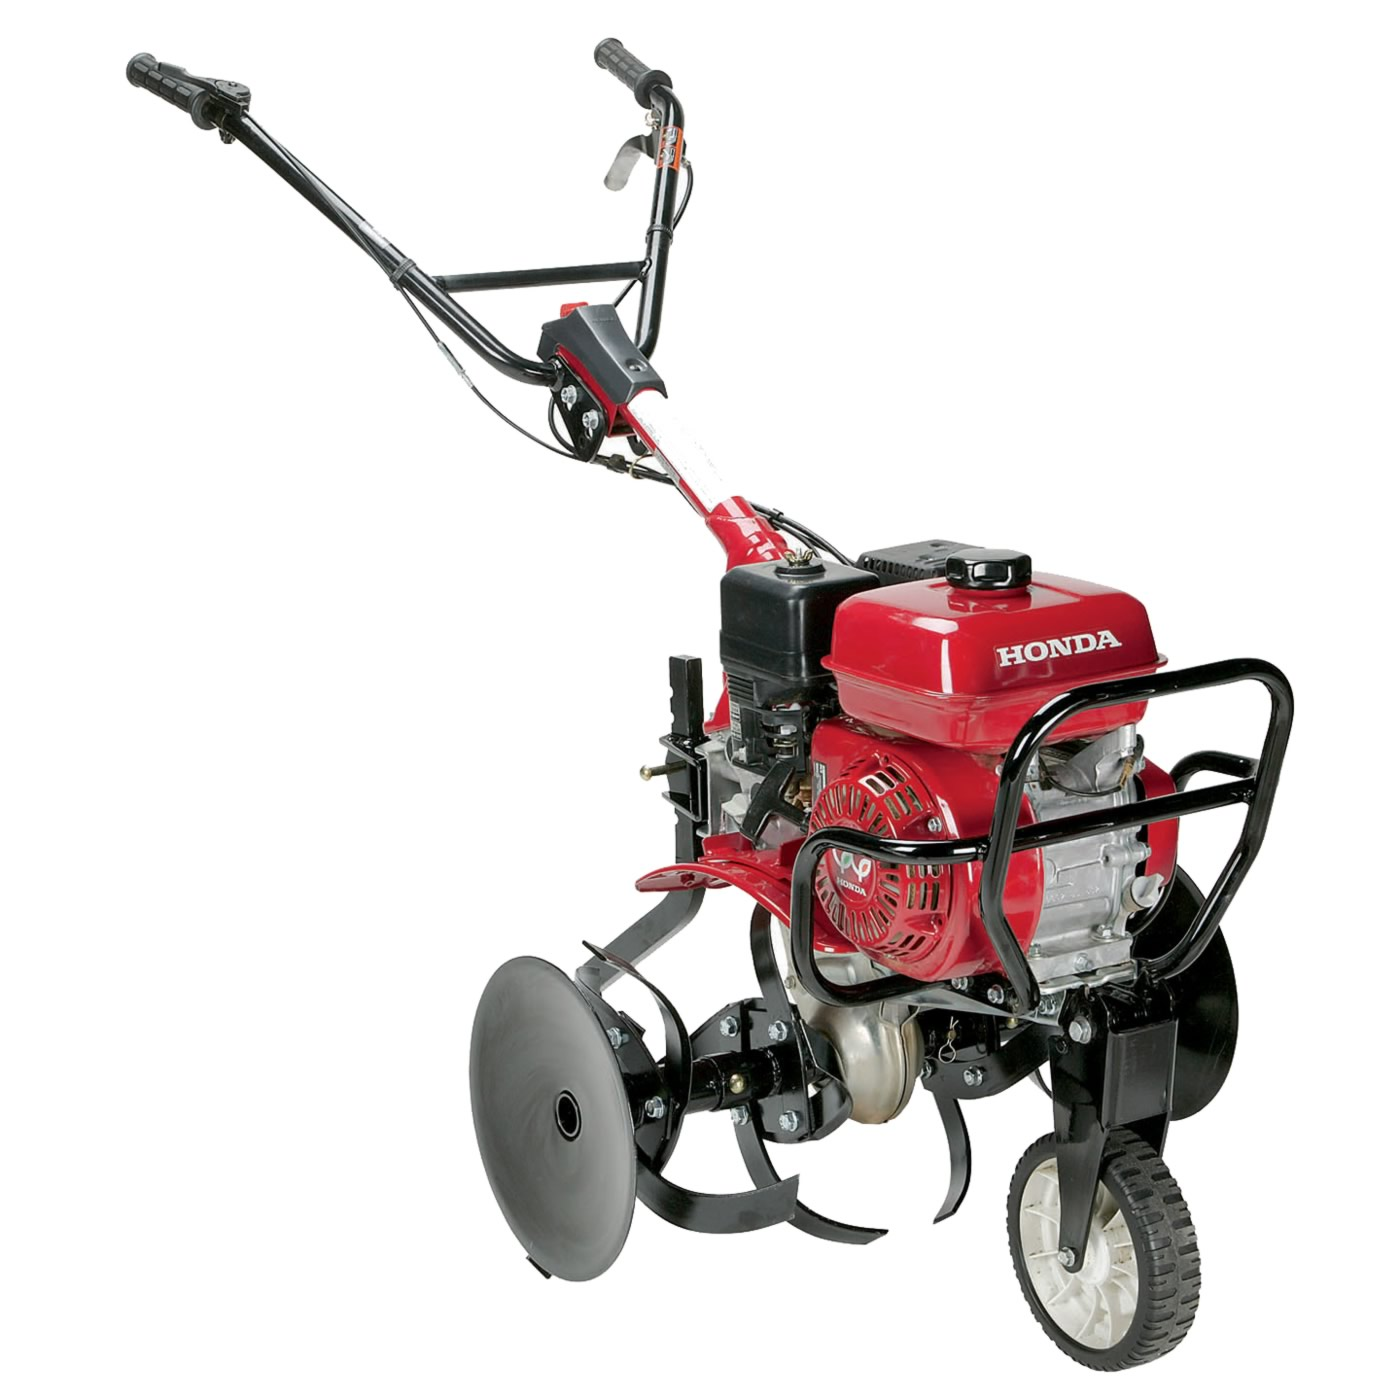 Choosing the Right Honda Tiller | Shank's Lawn Blog